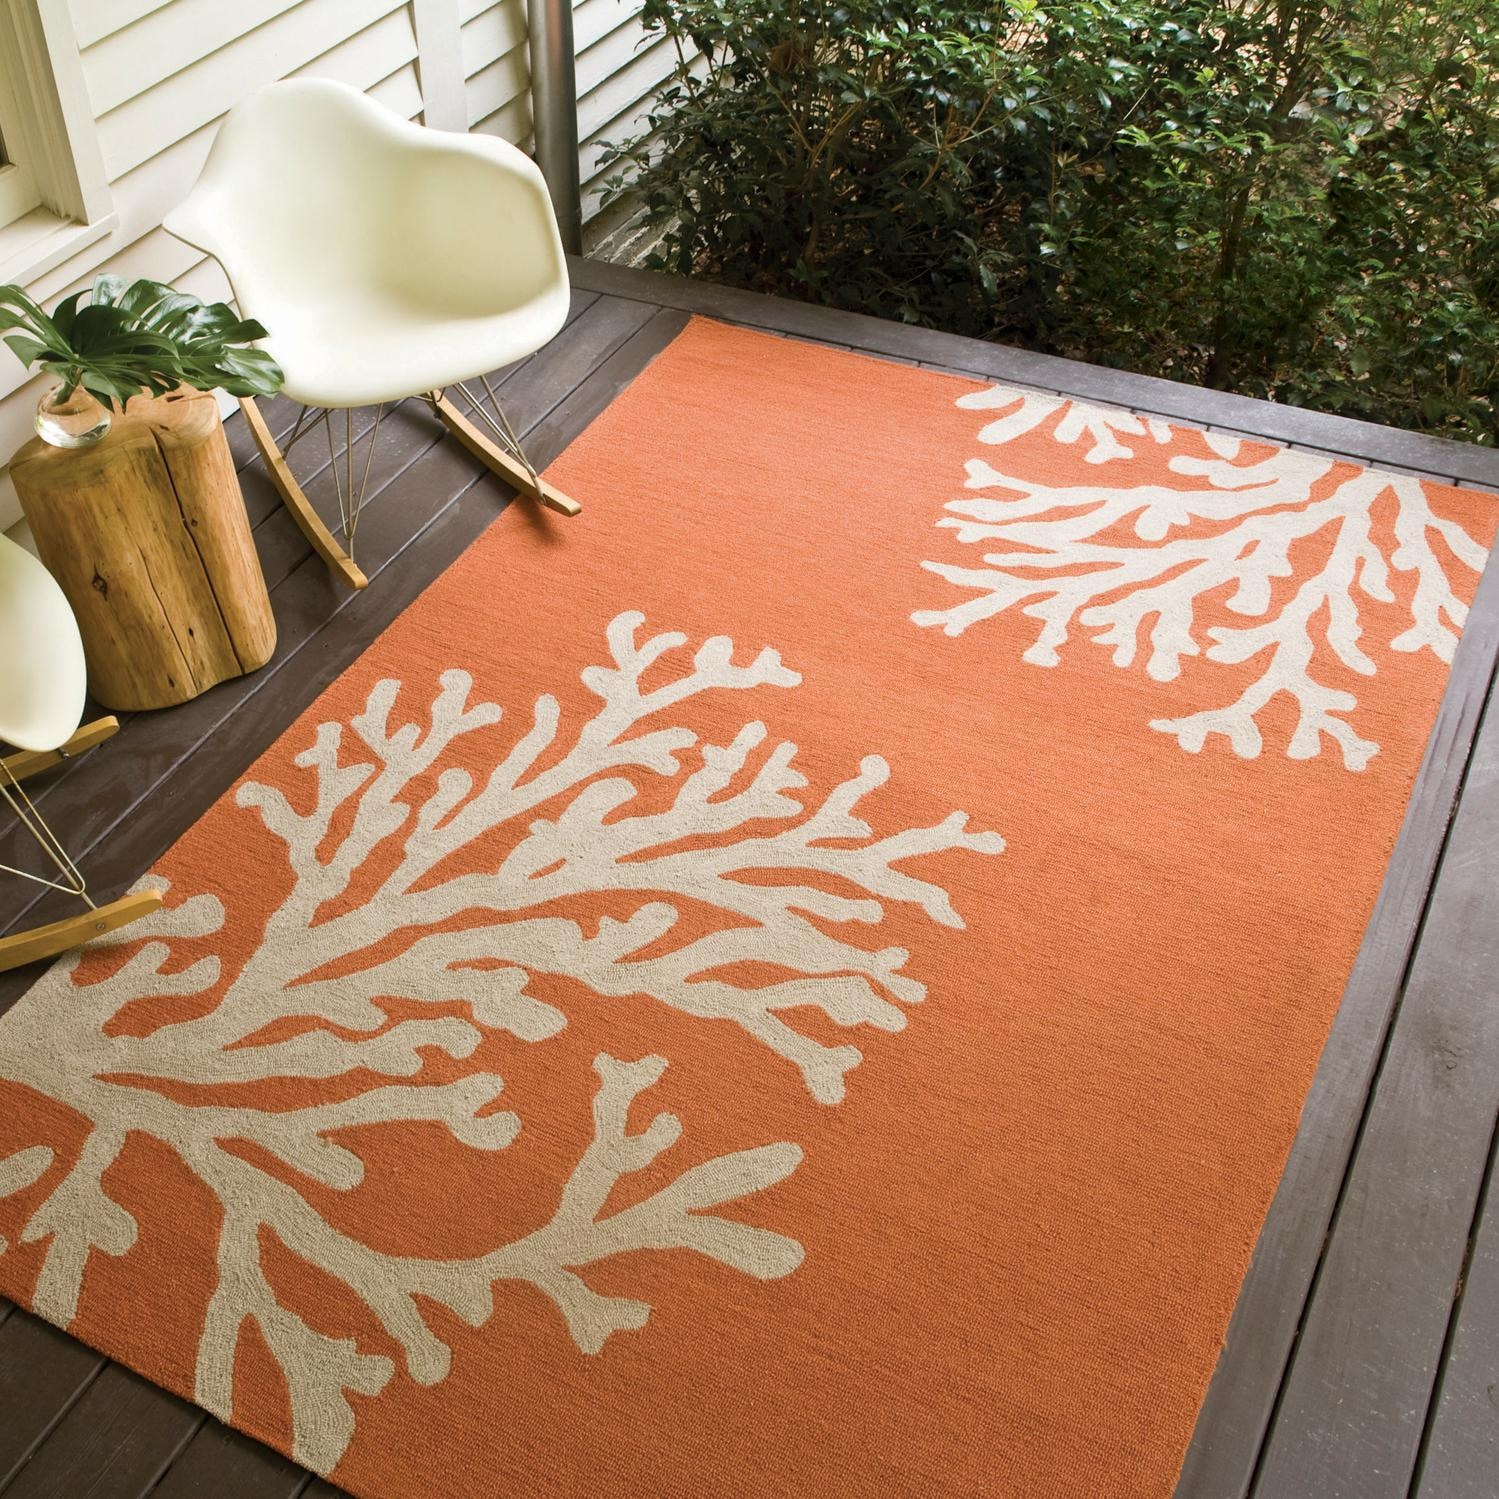 Jaipur Rugs Grant Bough Out 8 X 8 Indoor Outdoor Rug